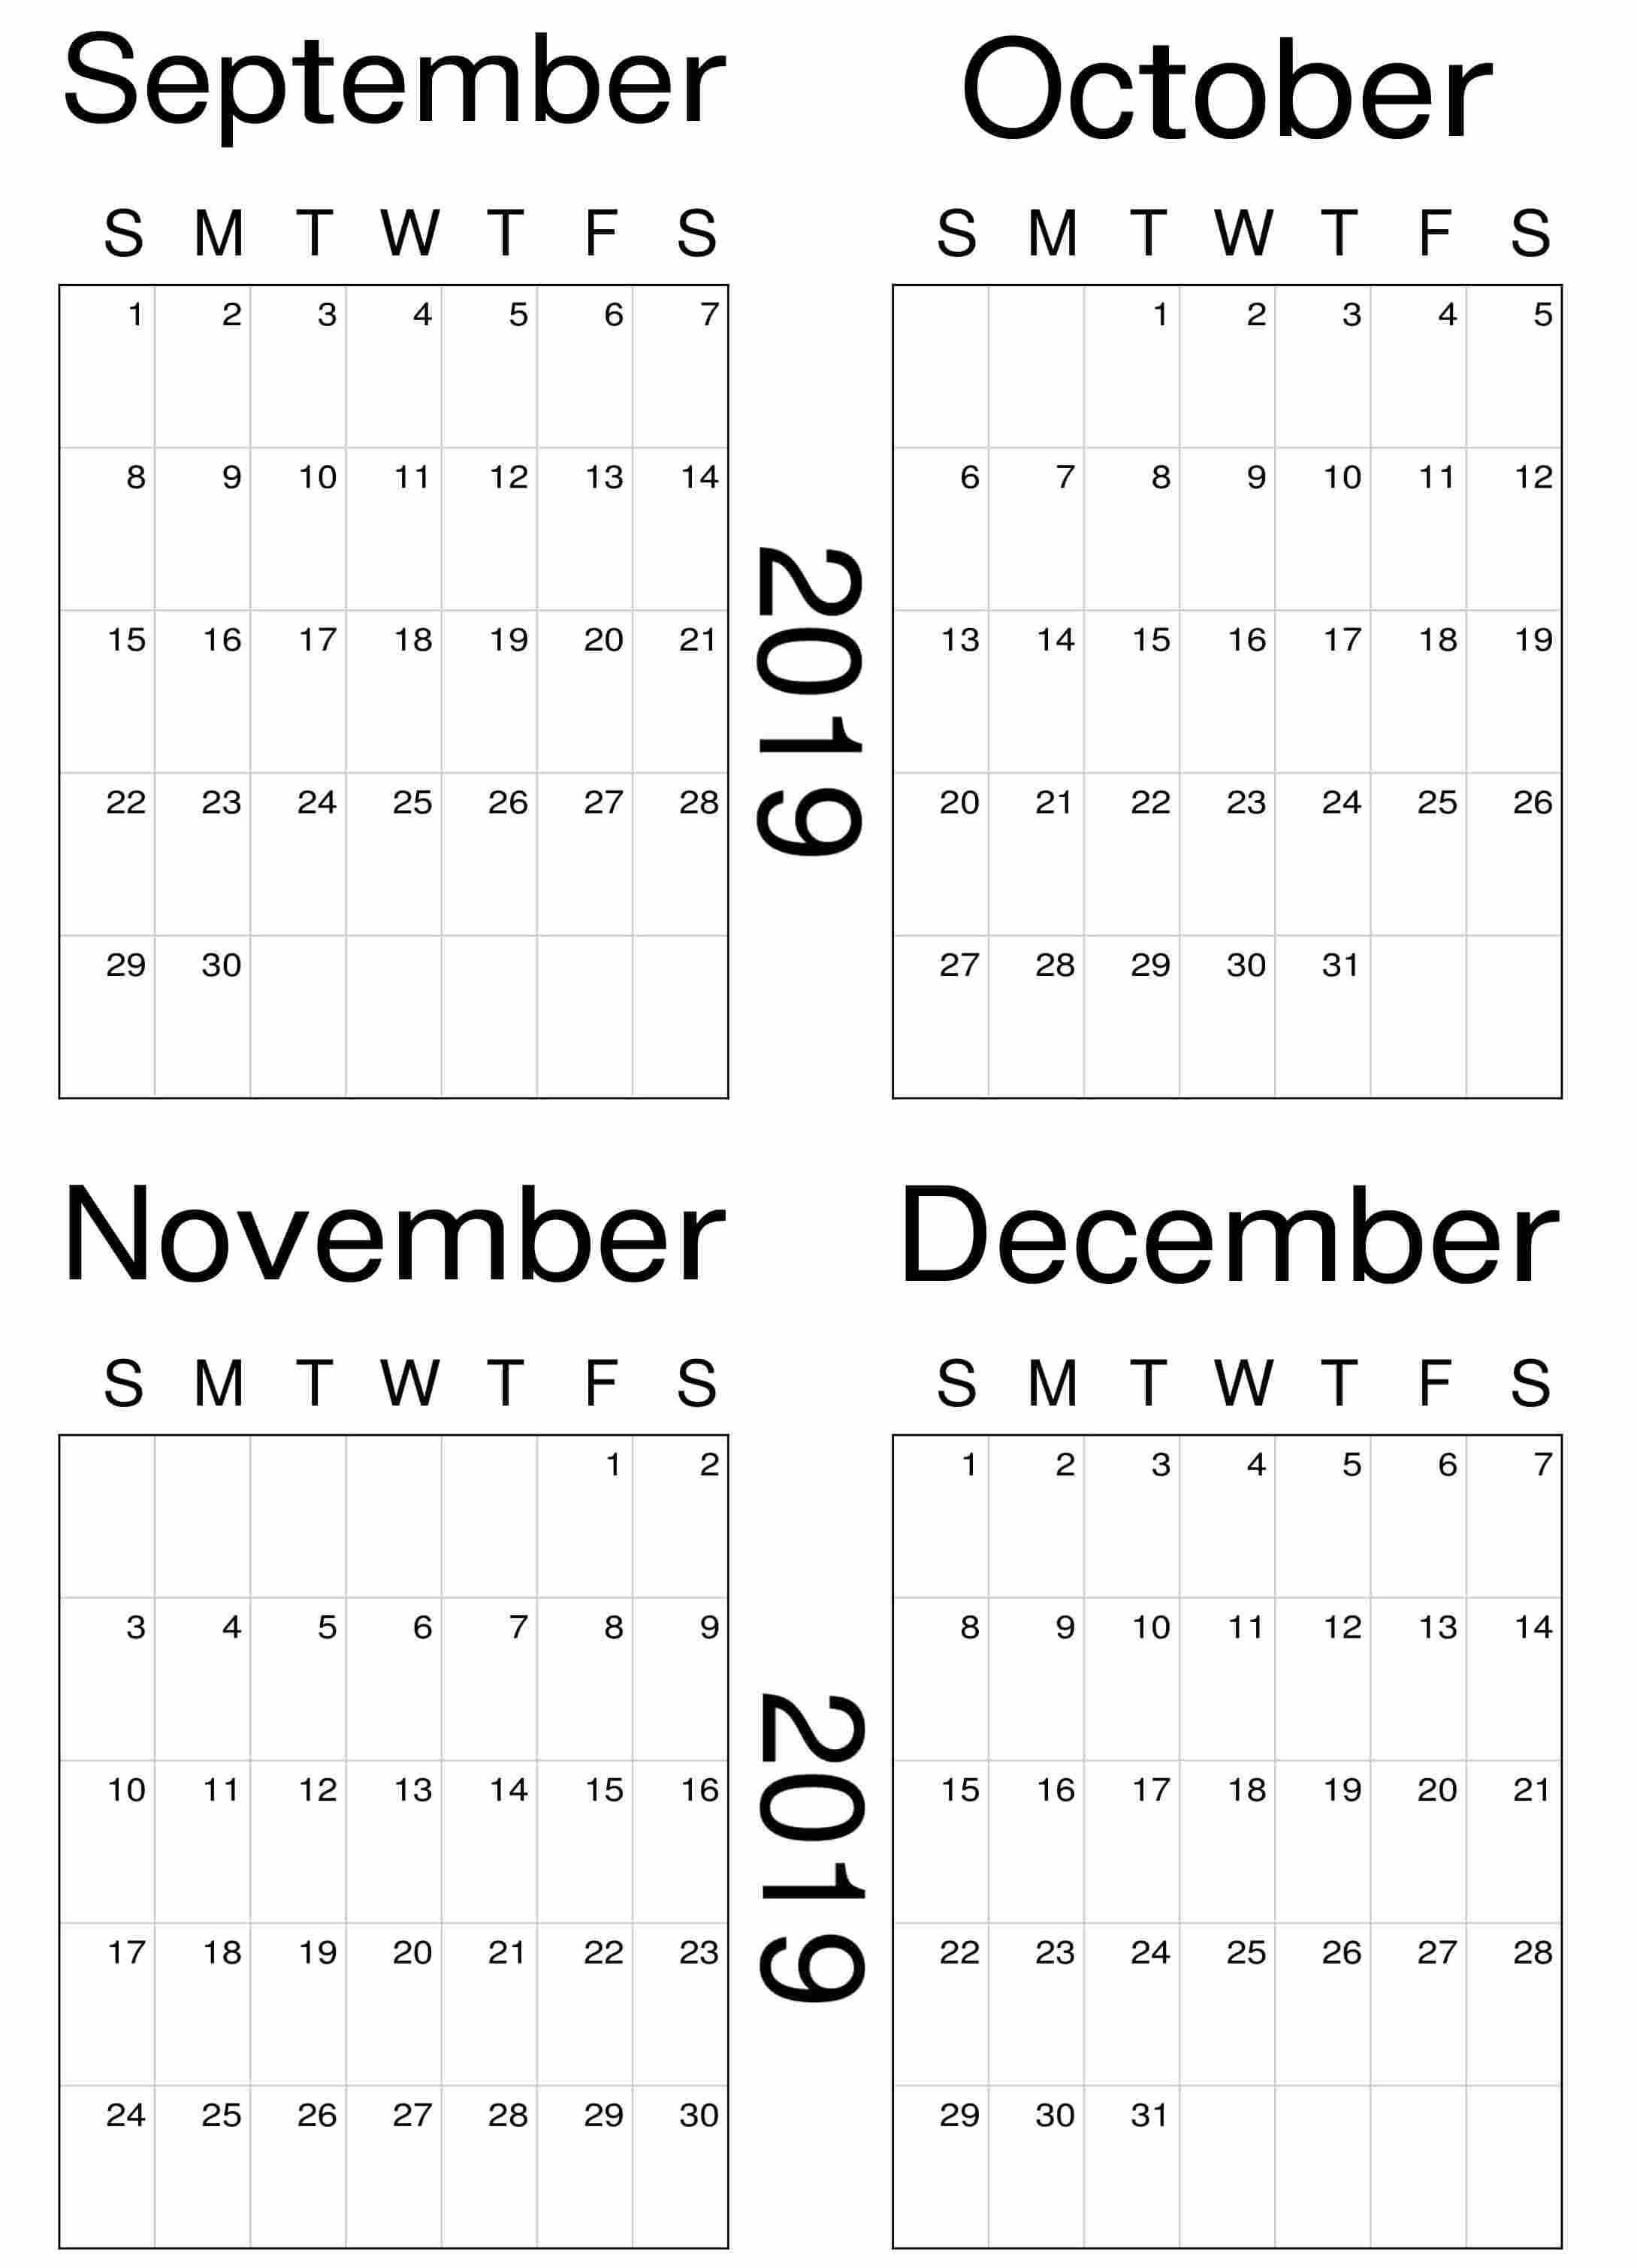 image regarding November and December Calendar Printable named Blank September Oct November 2019 Calendar Template